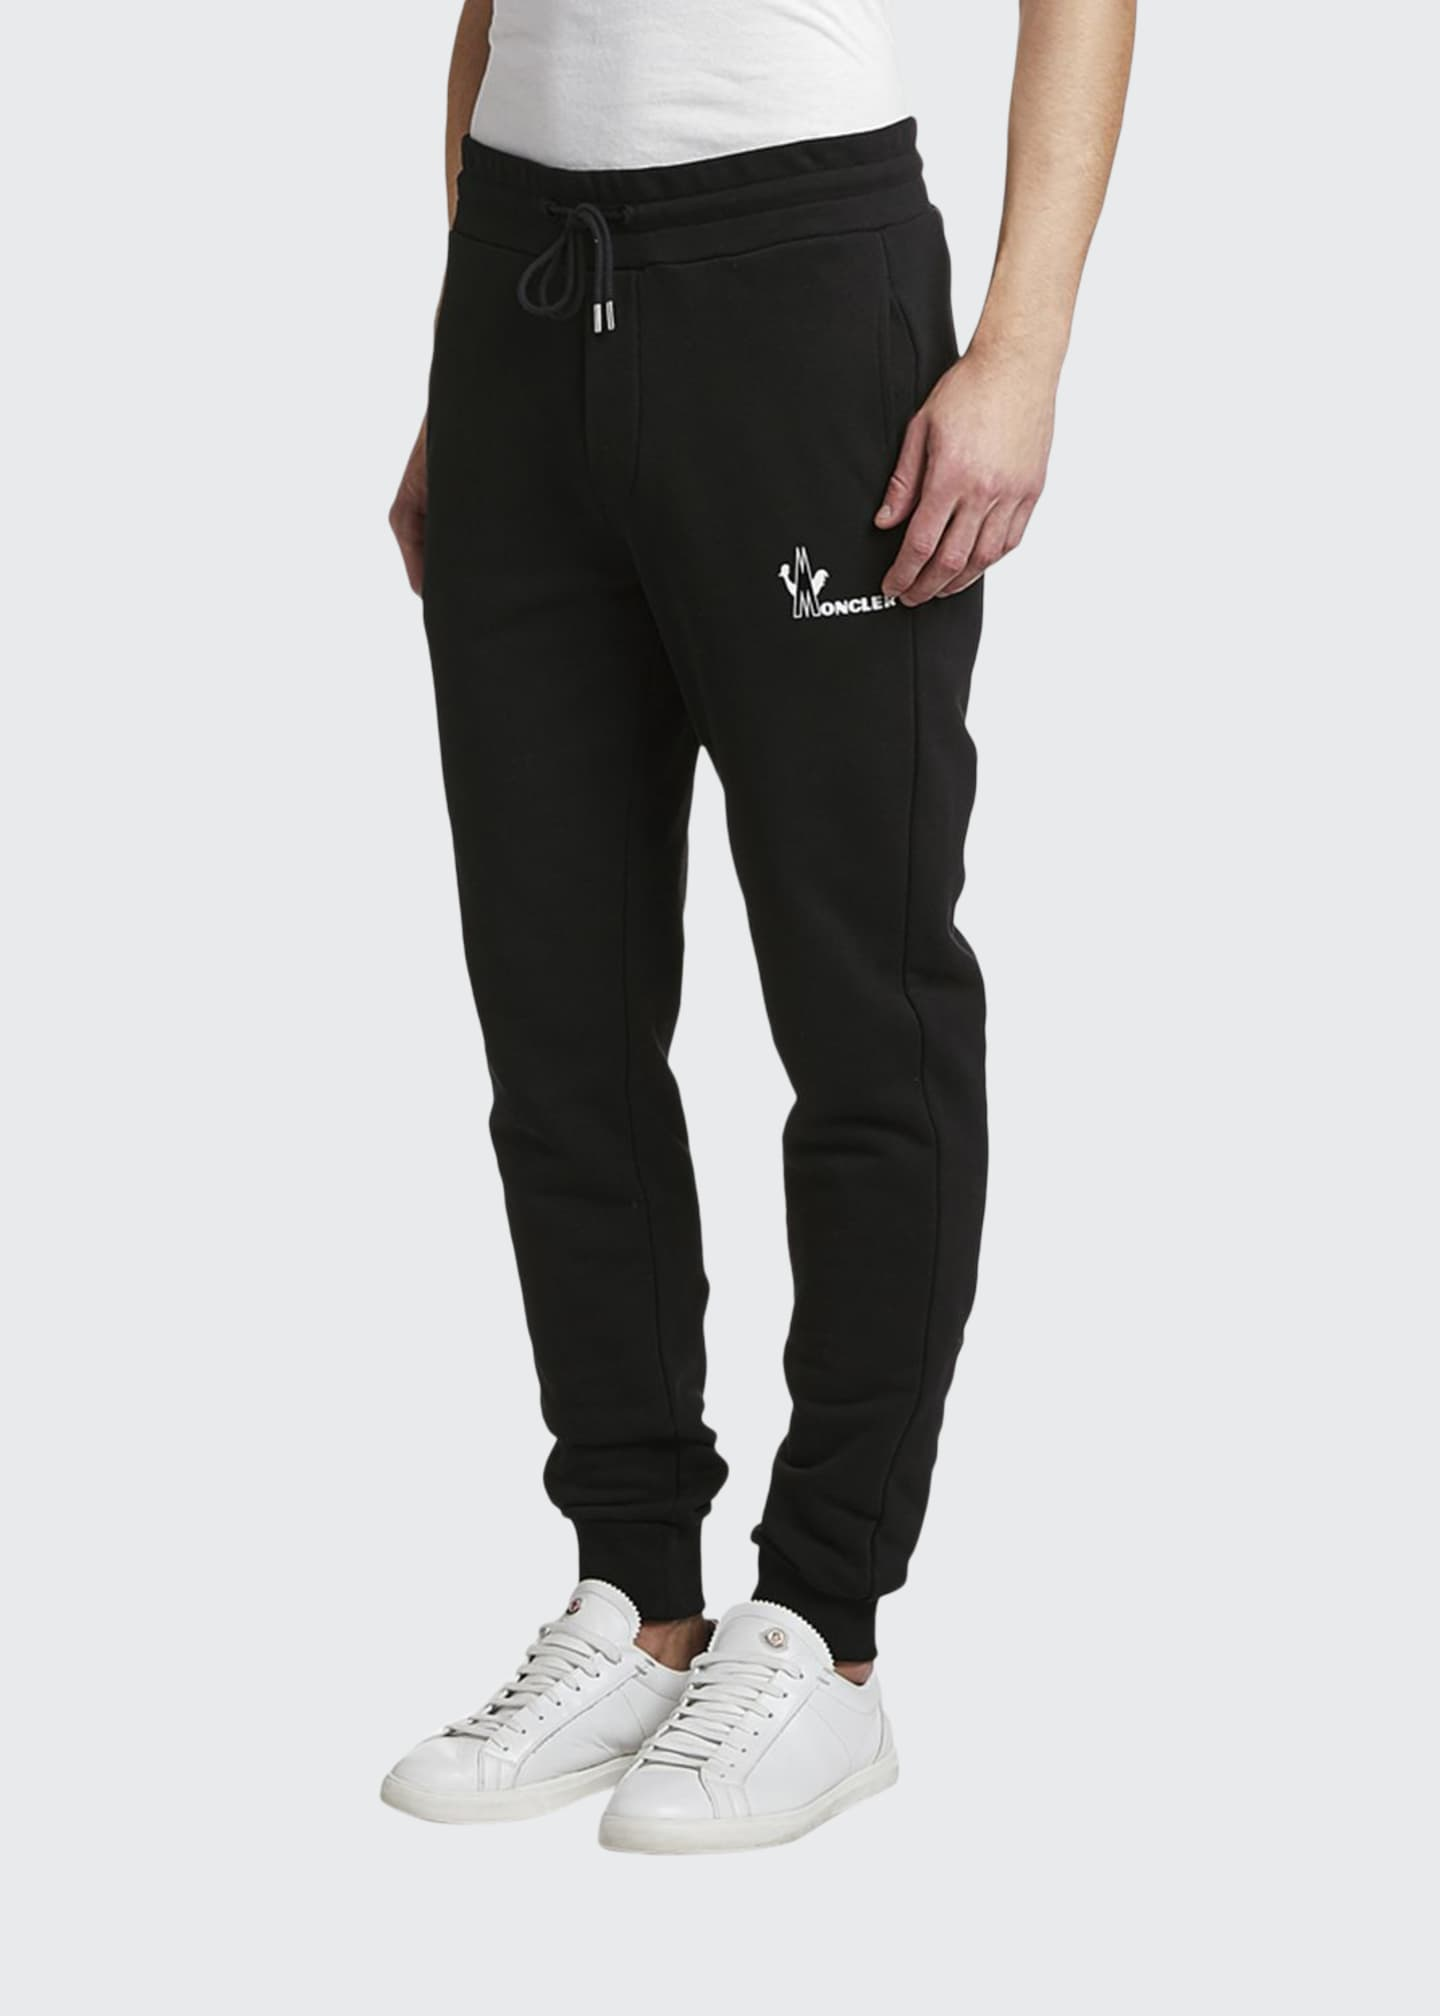 Moncler Men's Logo Drawstring Sweatpants